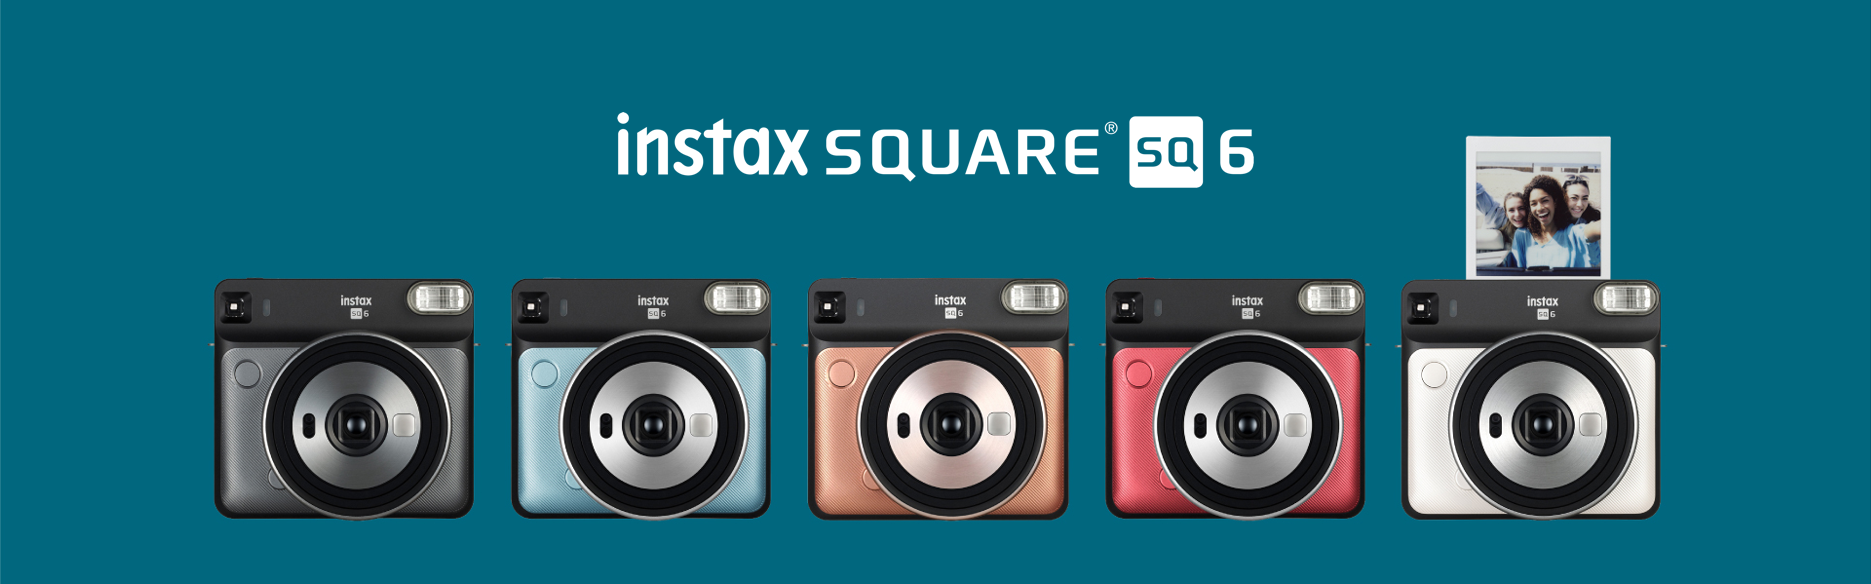 Blue hero image with SQUARE SQ6 cameras in different colors